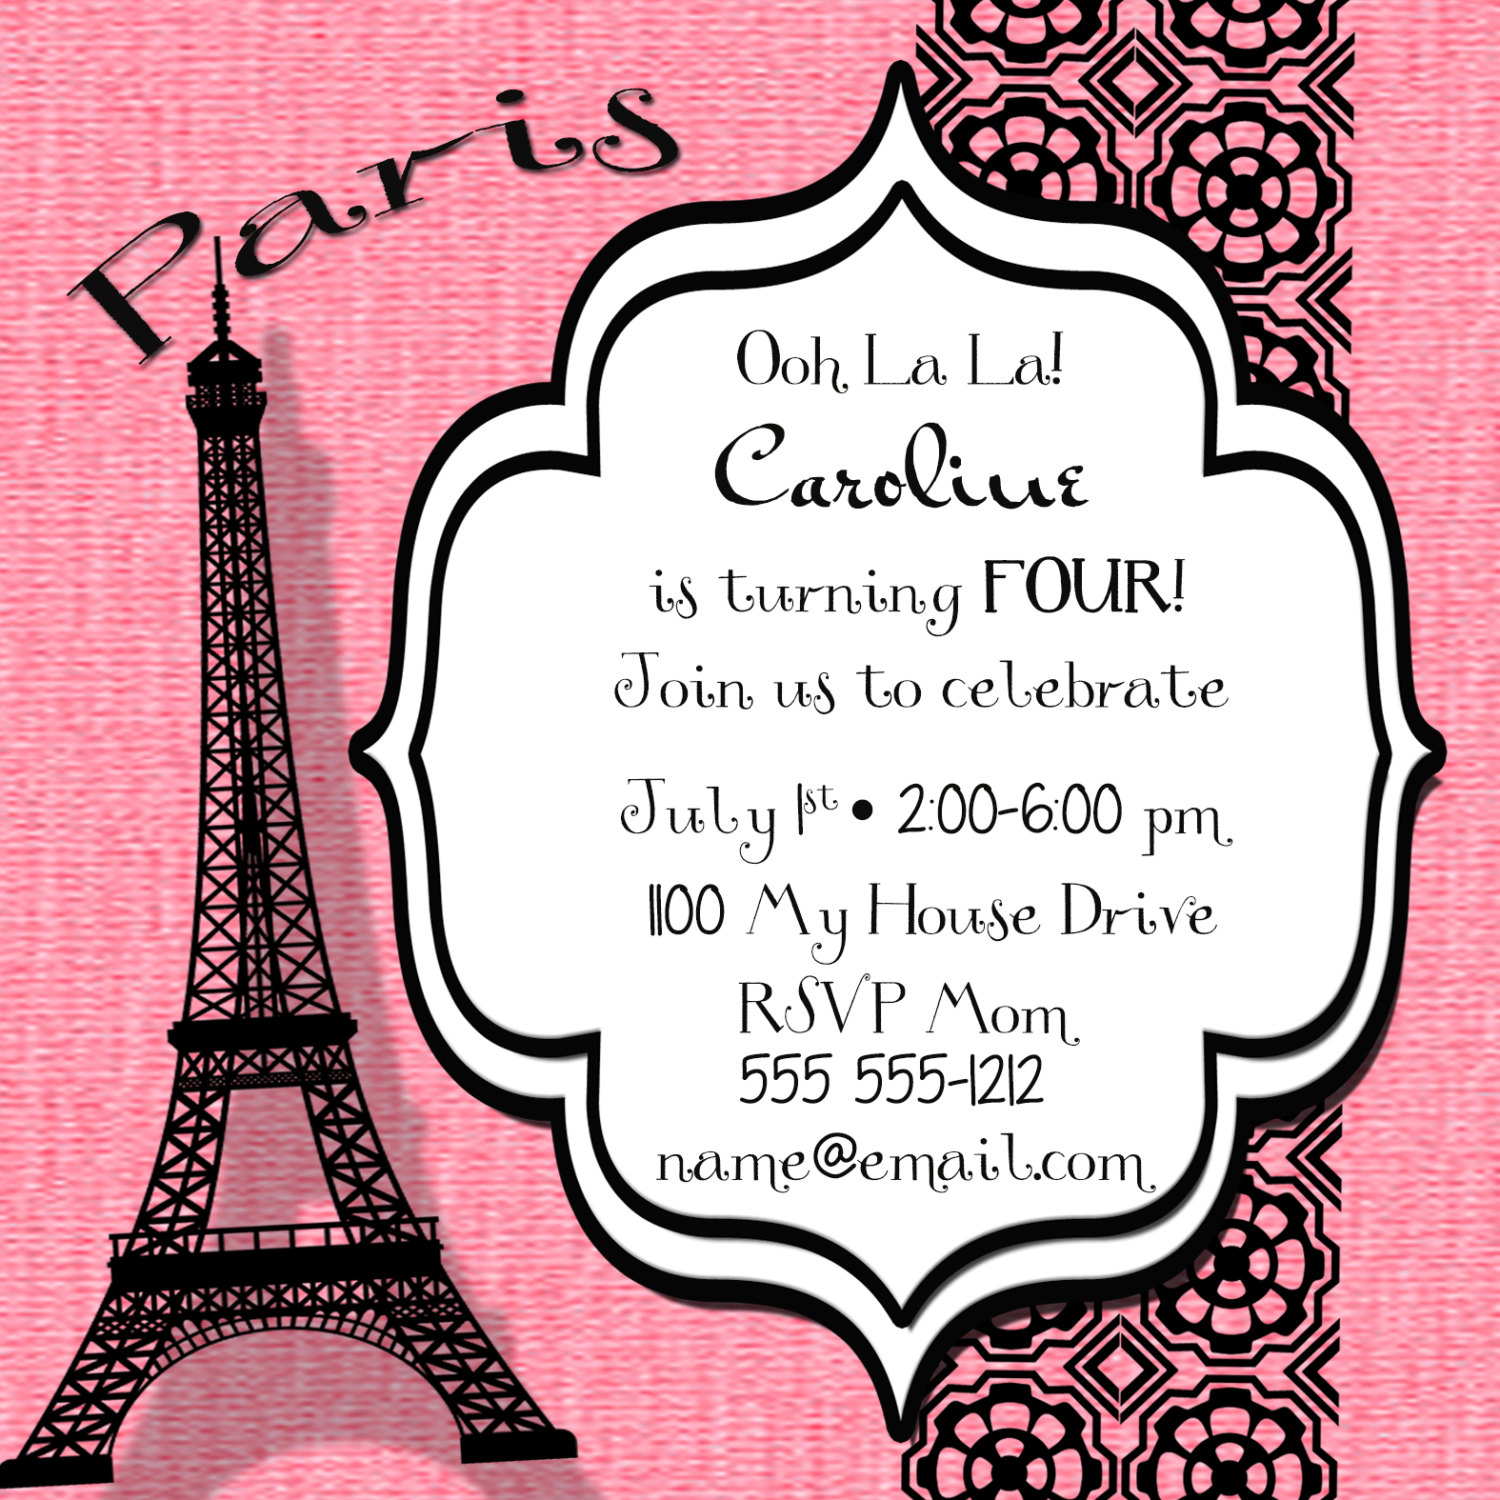 Paris eiffel tower personalized birthday invitation 1 sided paris eiffel tower personalized birthday invitation 1 sided birthday card party invitation french stopboris Image collections